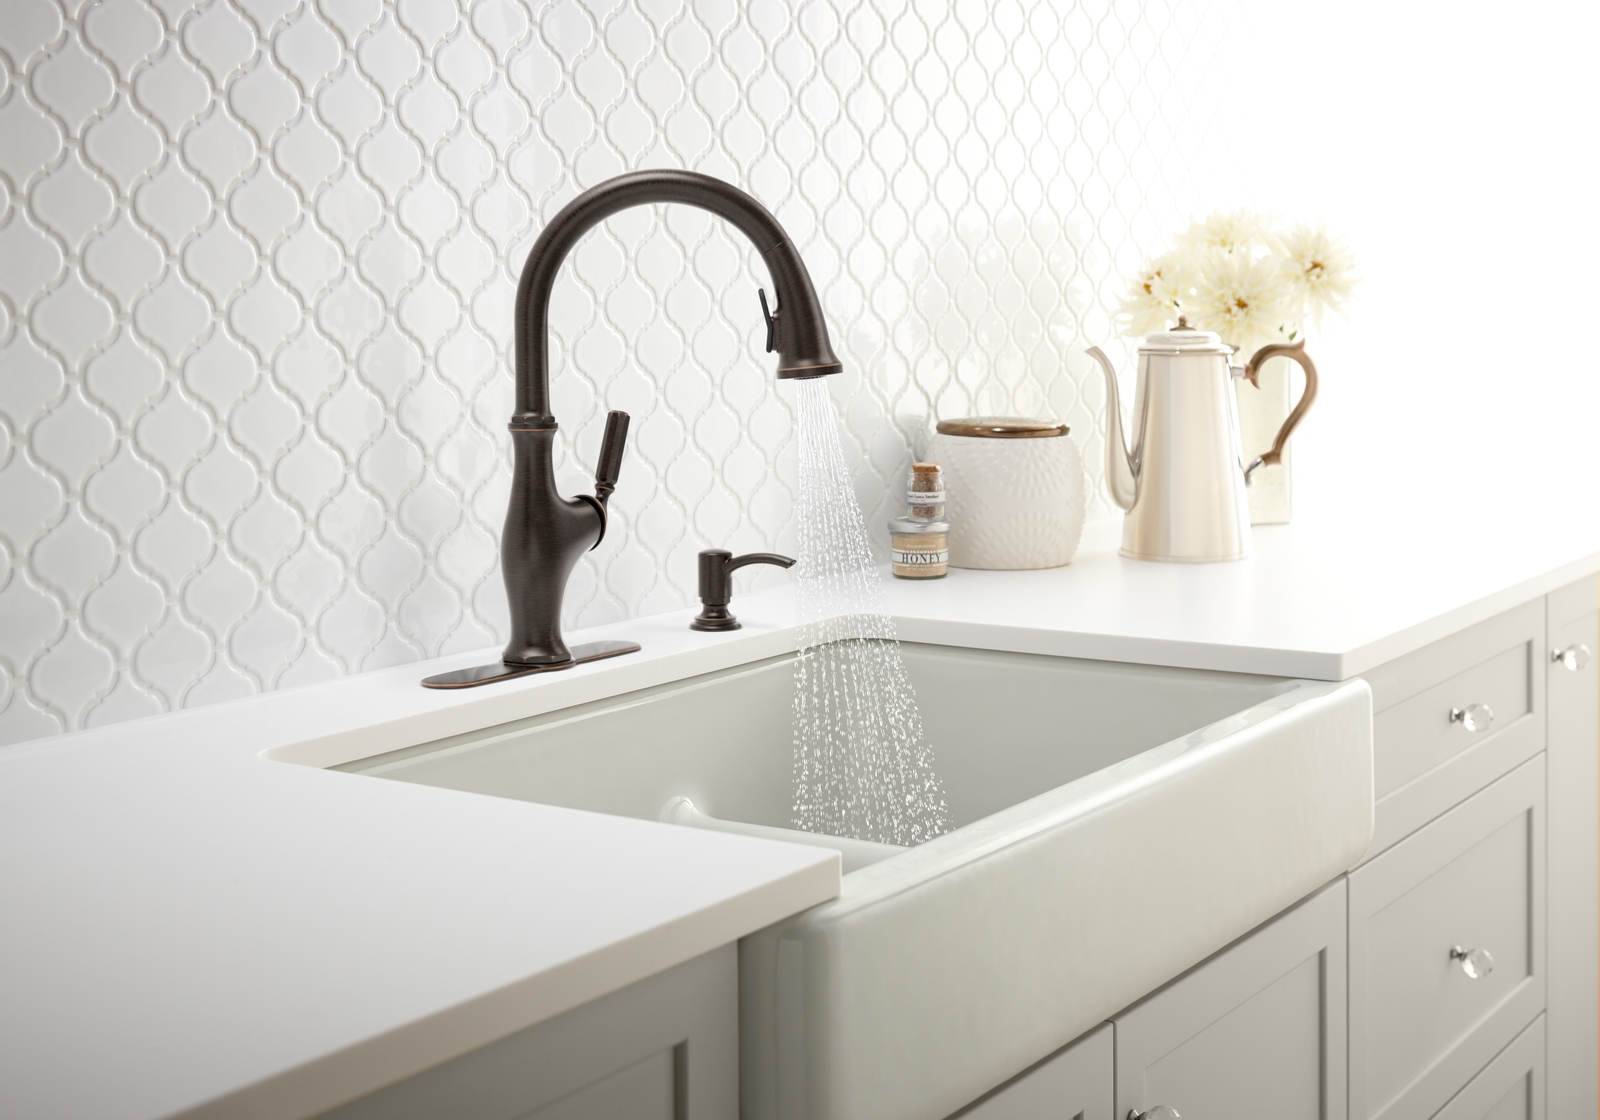 wonderful Farmhouse Kitchen Faucet #1: I cannot choose which faucet is going to look the best in my farmhouse  kitchen!